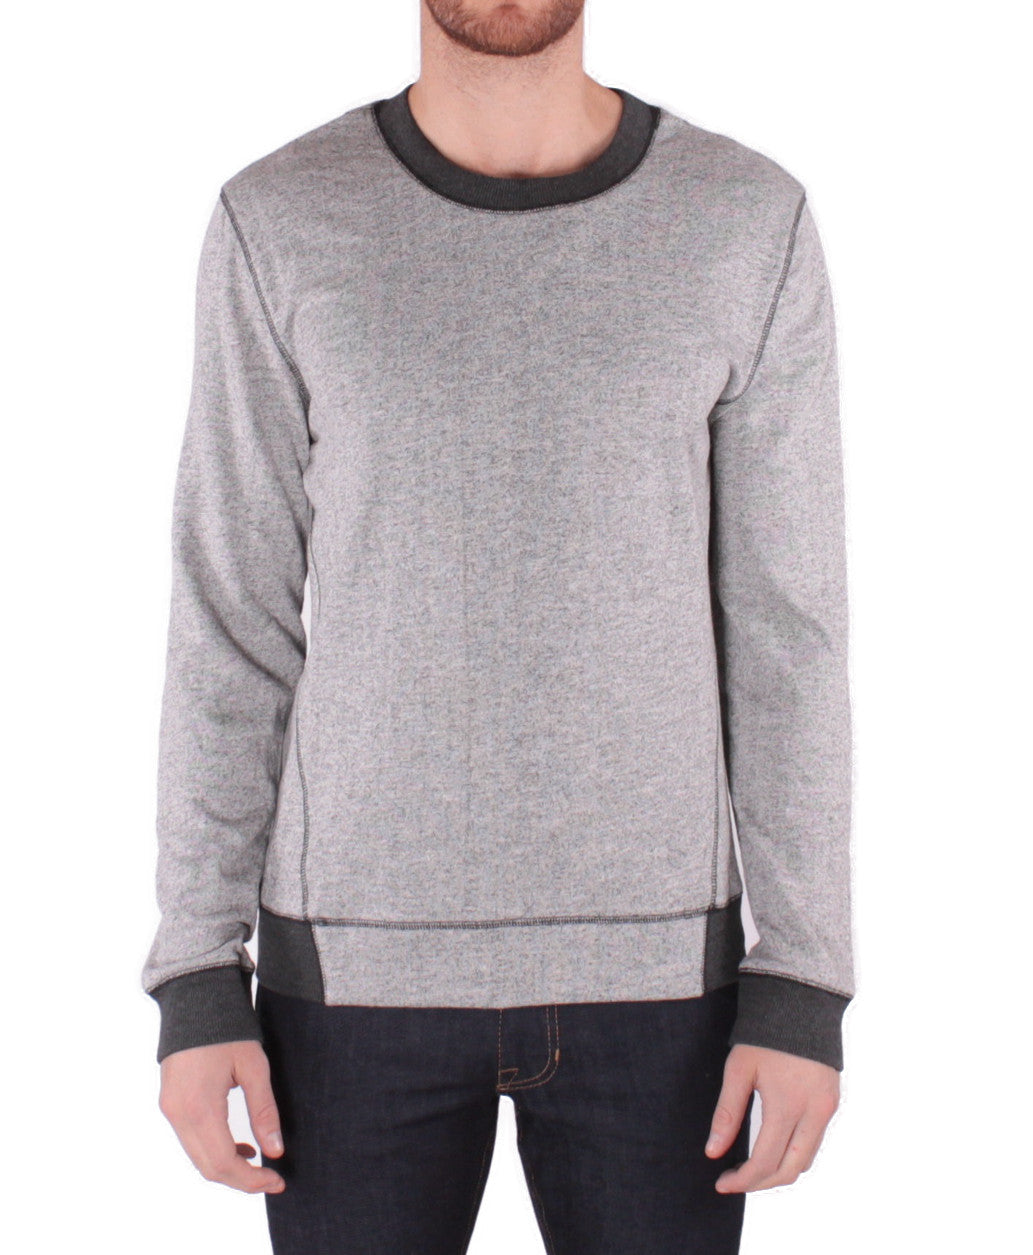 grey marle sweat top